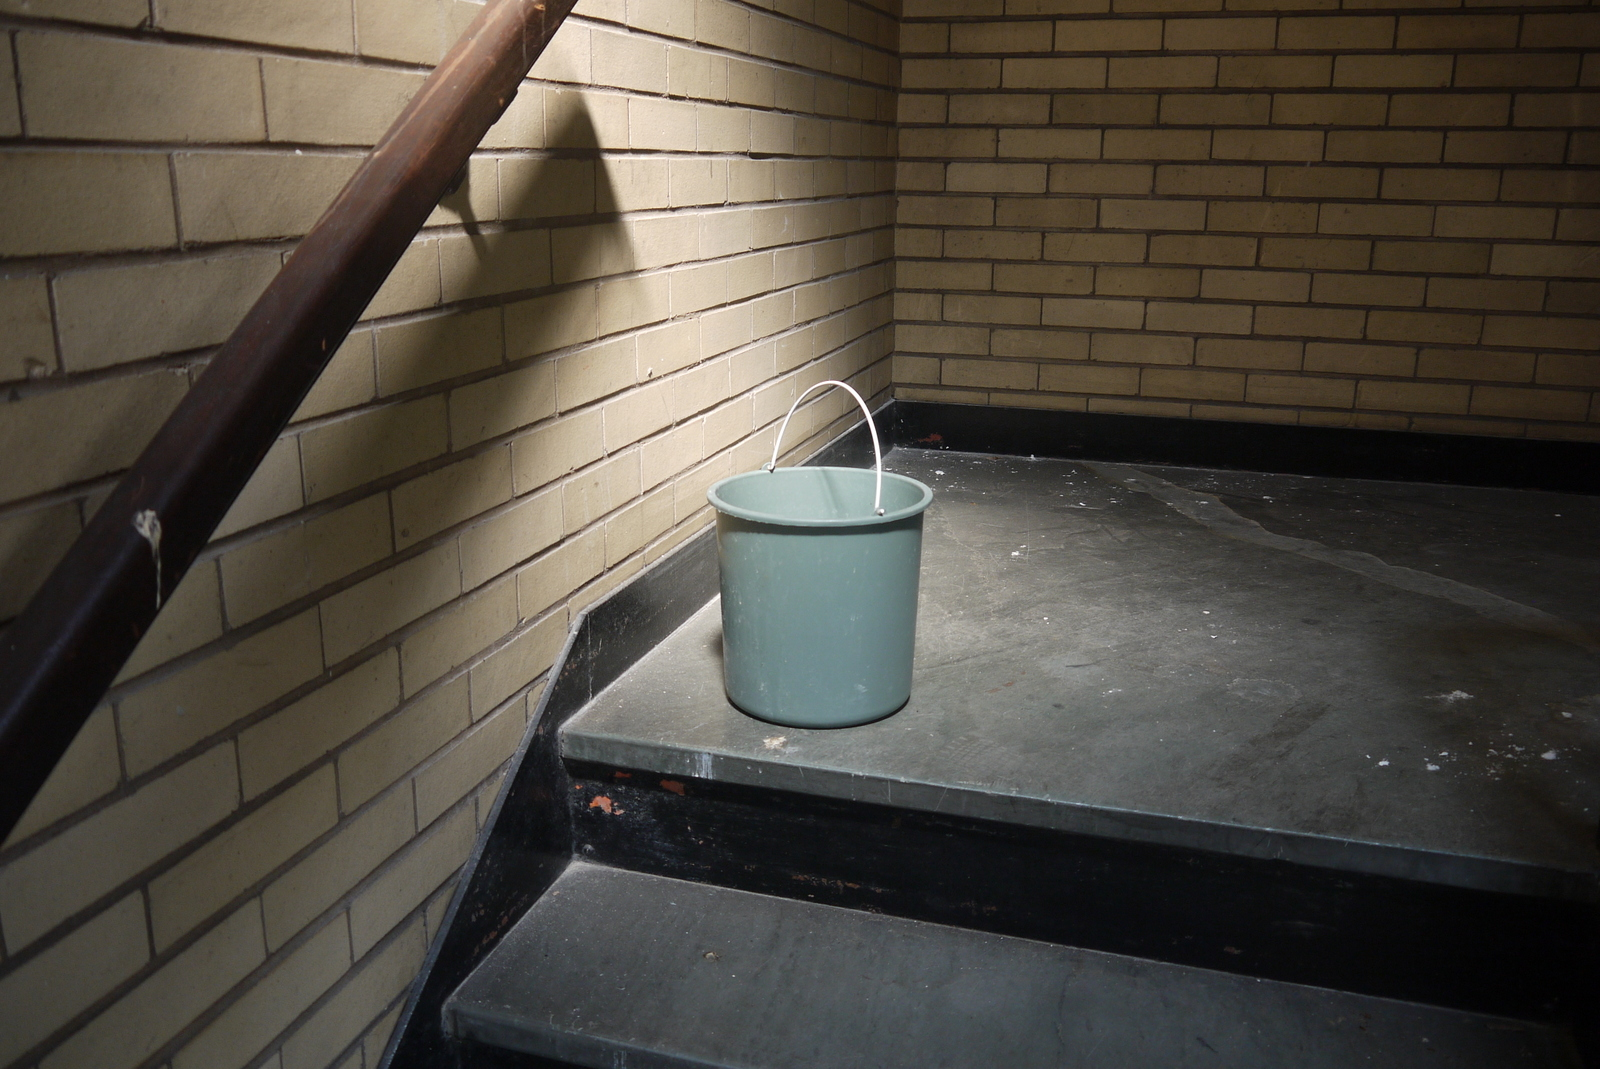 The bucket seems extra heavy and special here on the 7th floor landing.